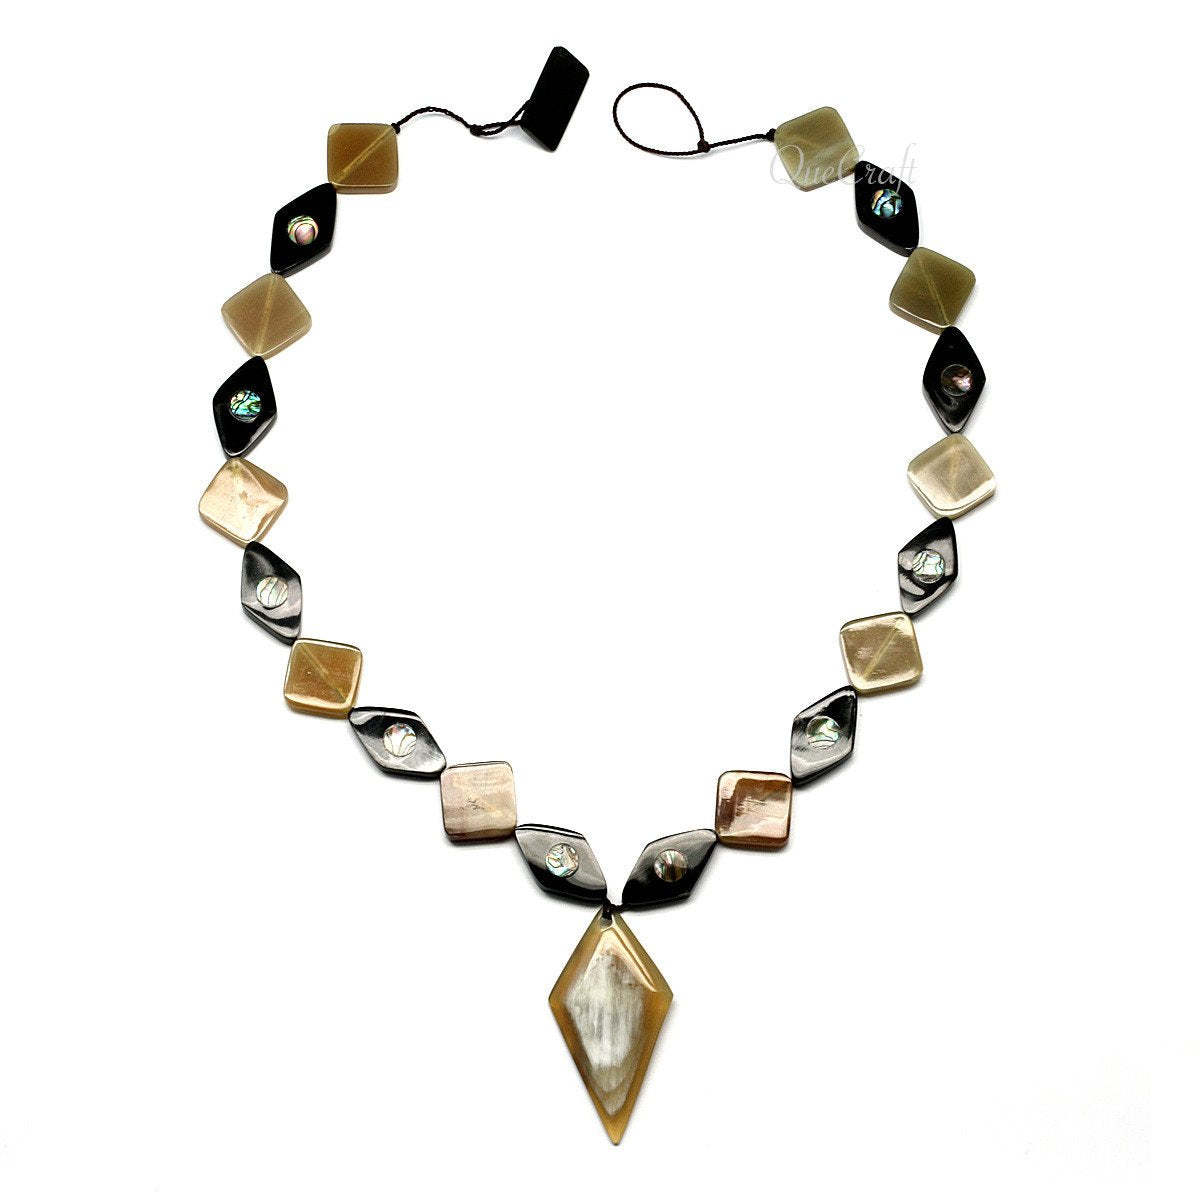 Horn & Abalone String Necklace #9715 - HORN.JEWELRY by QueCraft